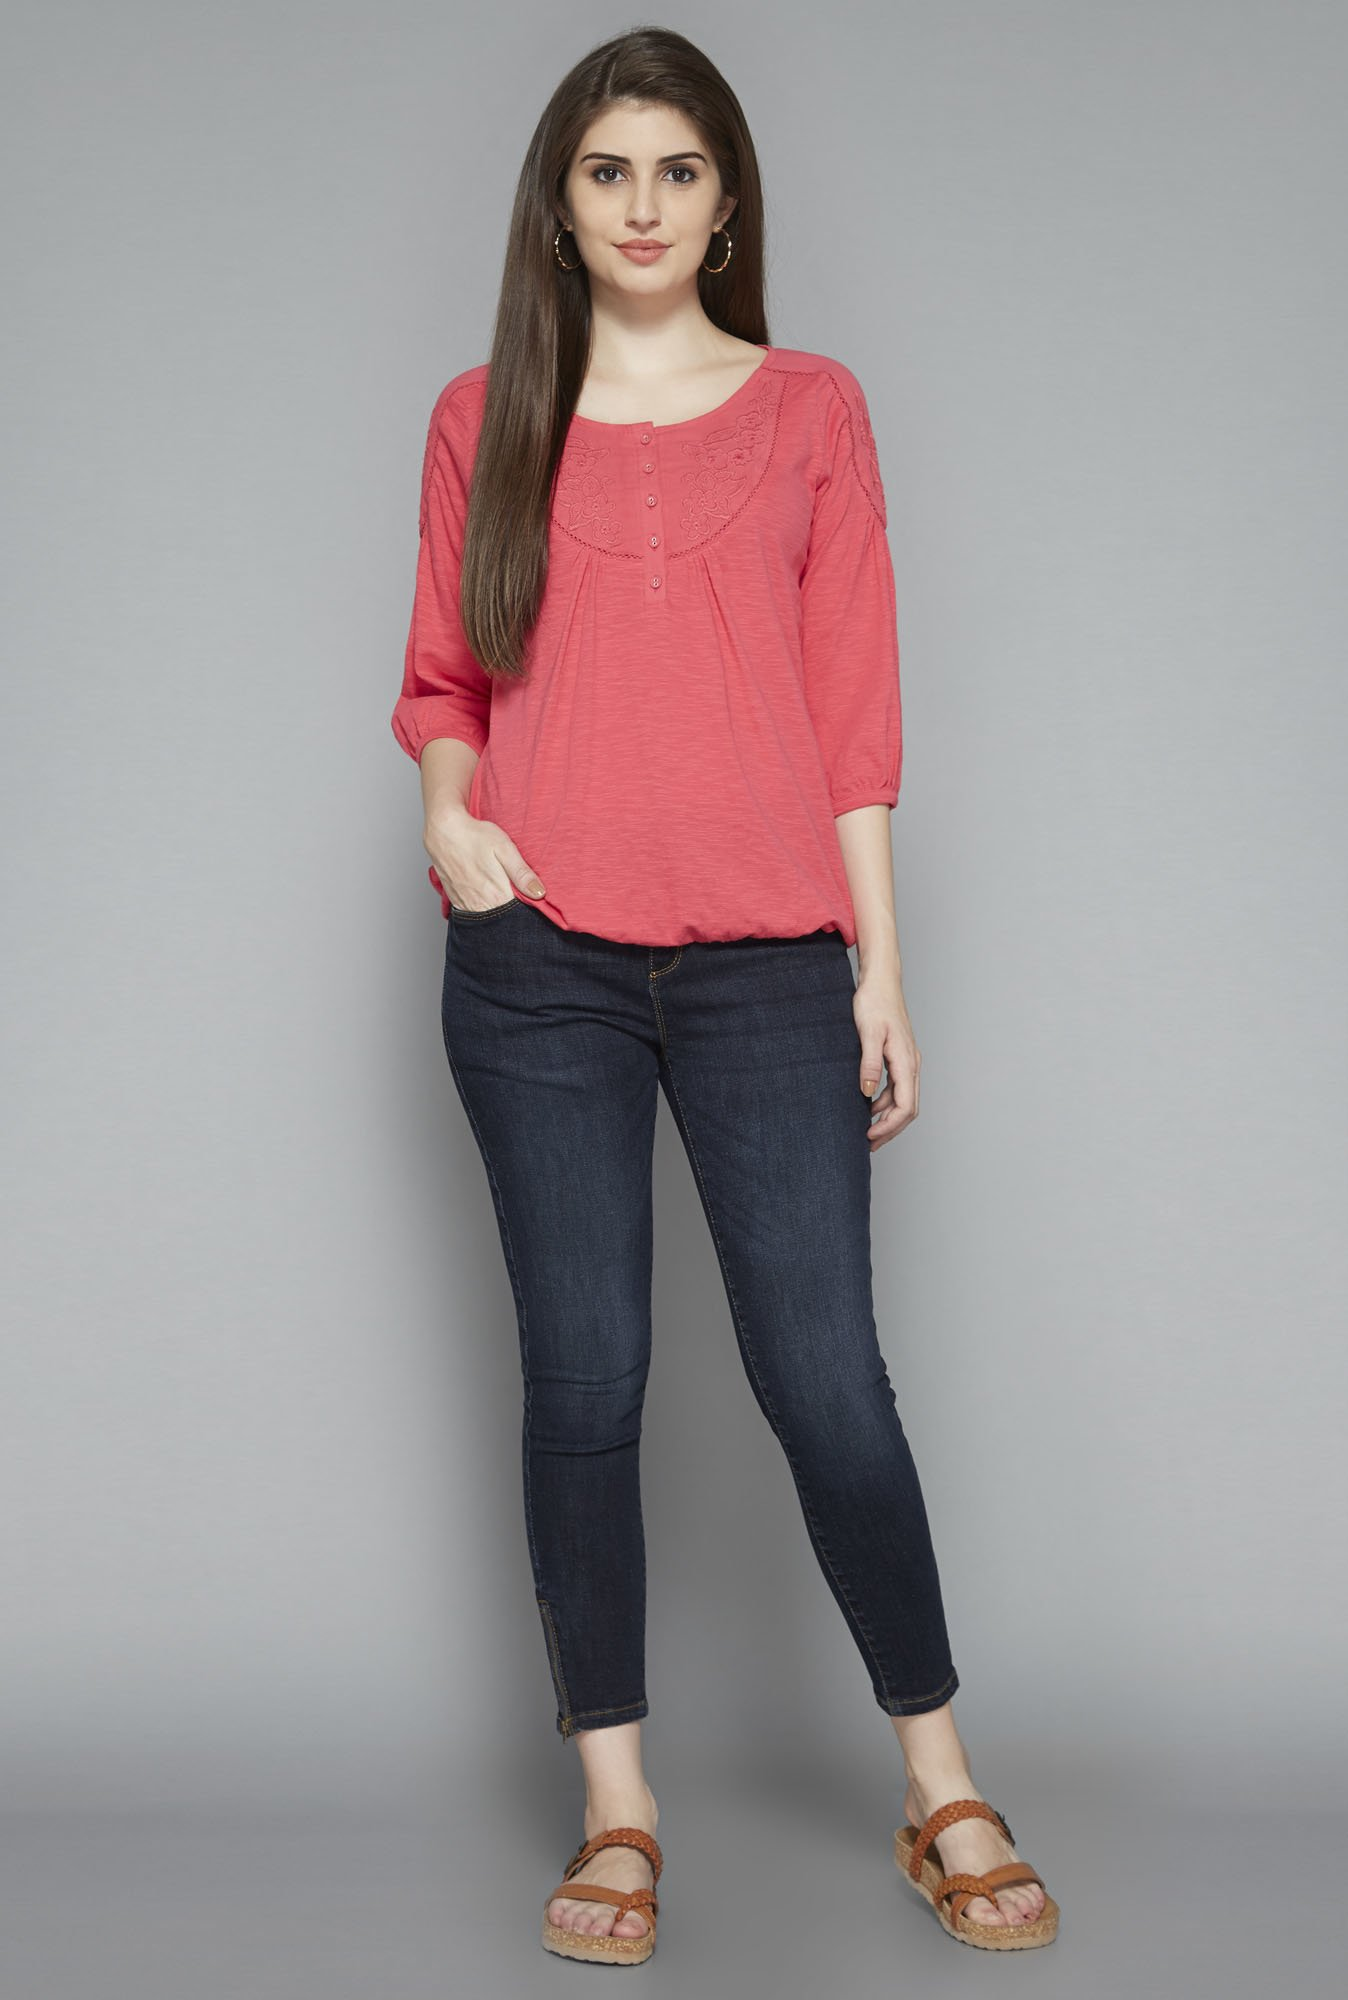 LOV by Westside Coral Dora Top